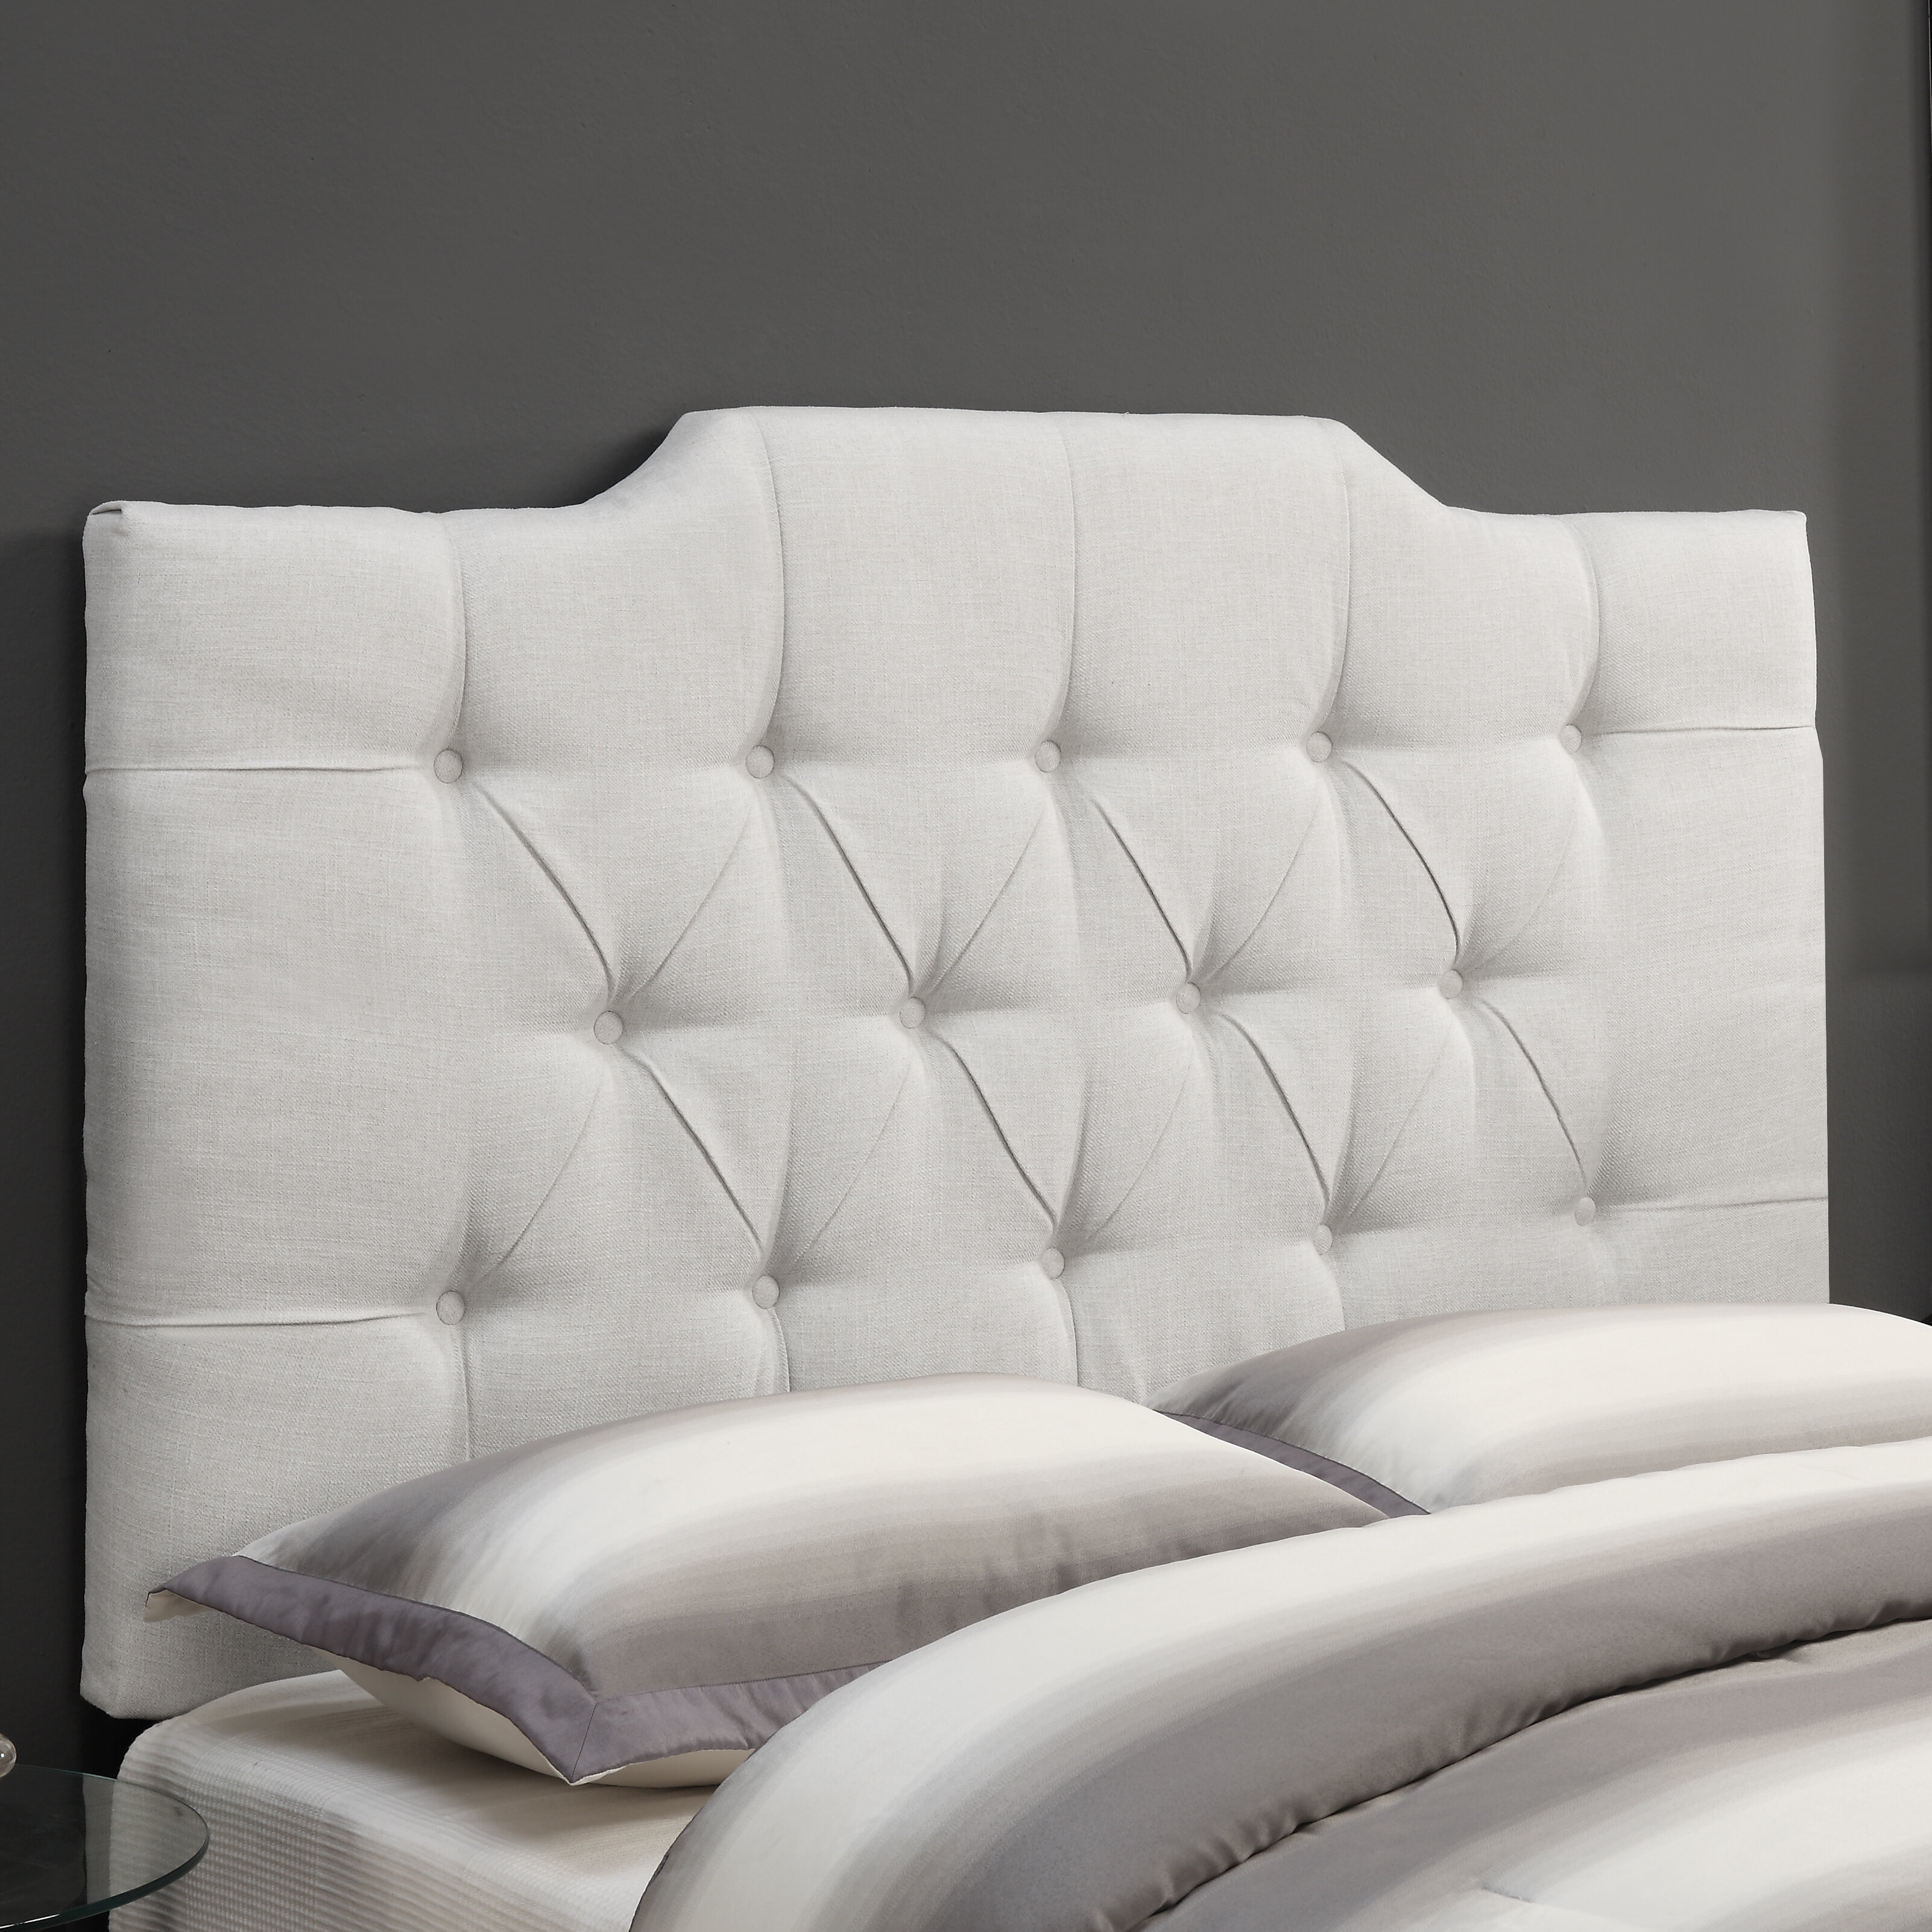 of emily popular headboards image upholstered reviews joss main imgid ikea pics fascinating woodside headboard u and astonishing concept for images panel